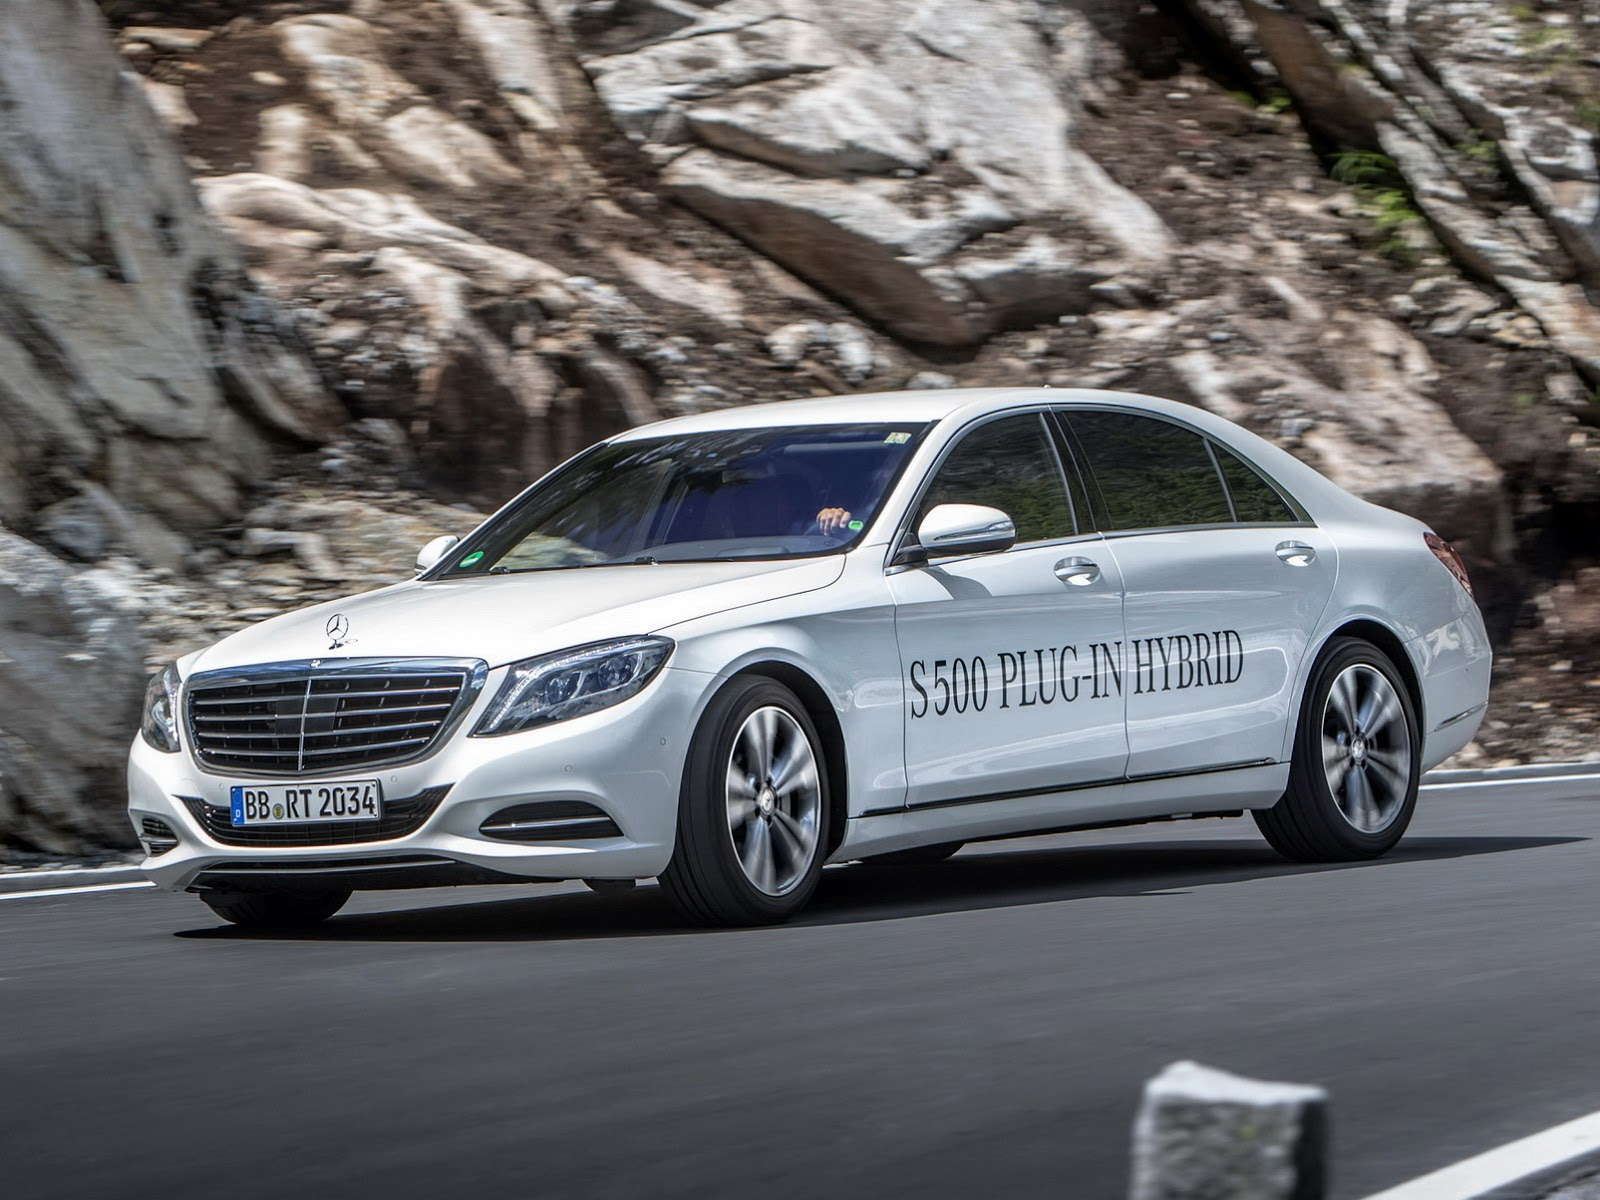 2015 Mercedes S500 Plug-in Hybrid pricing announced | Autonews 1